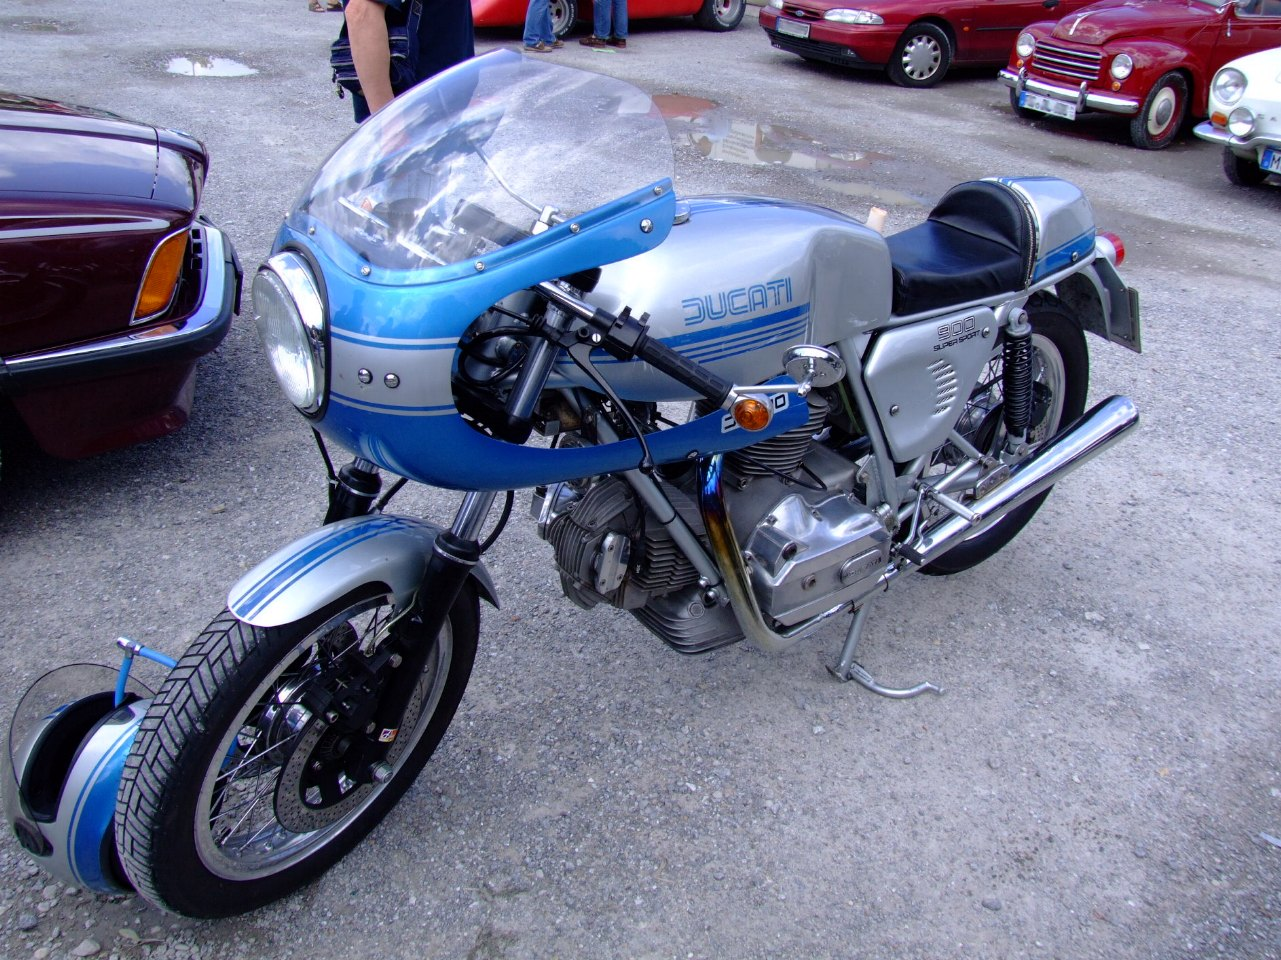 Ducati_900SuperSport.JPG